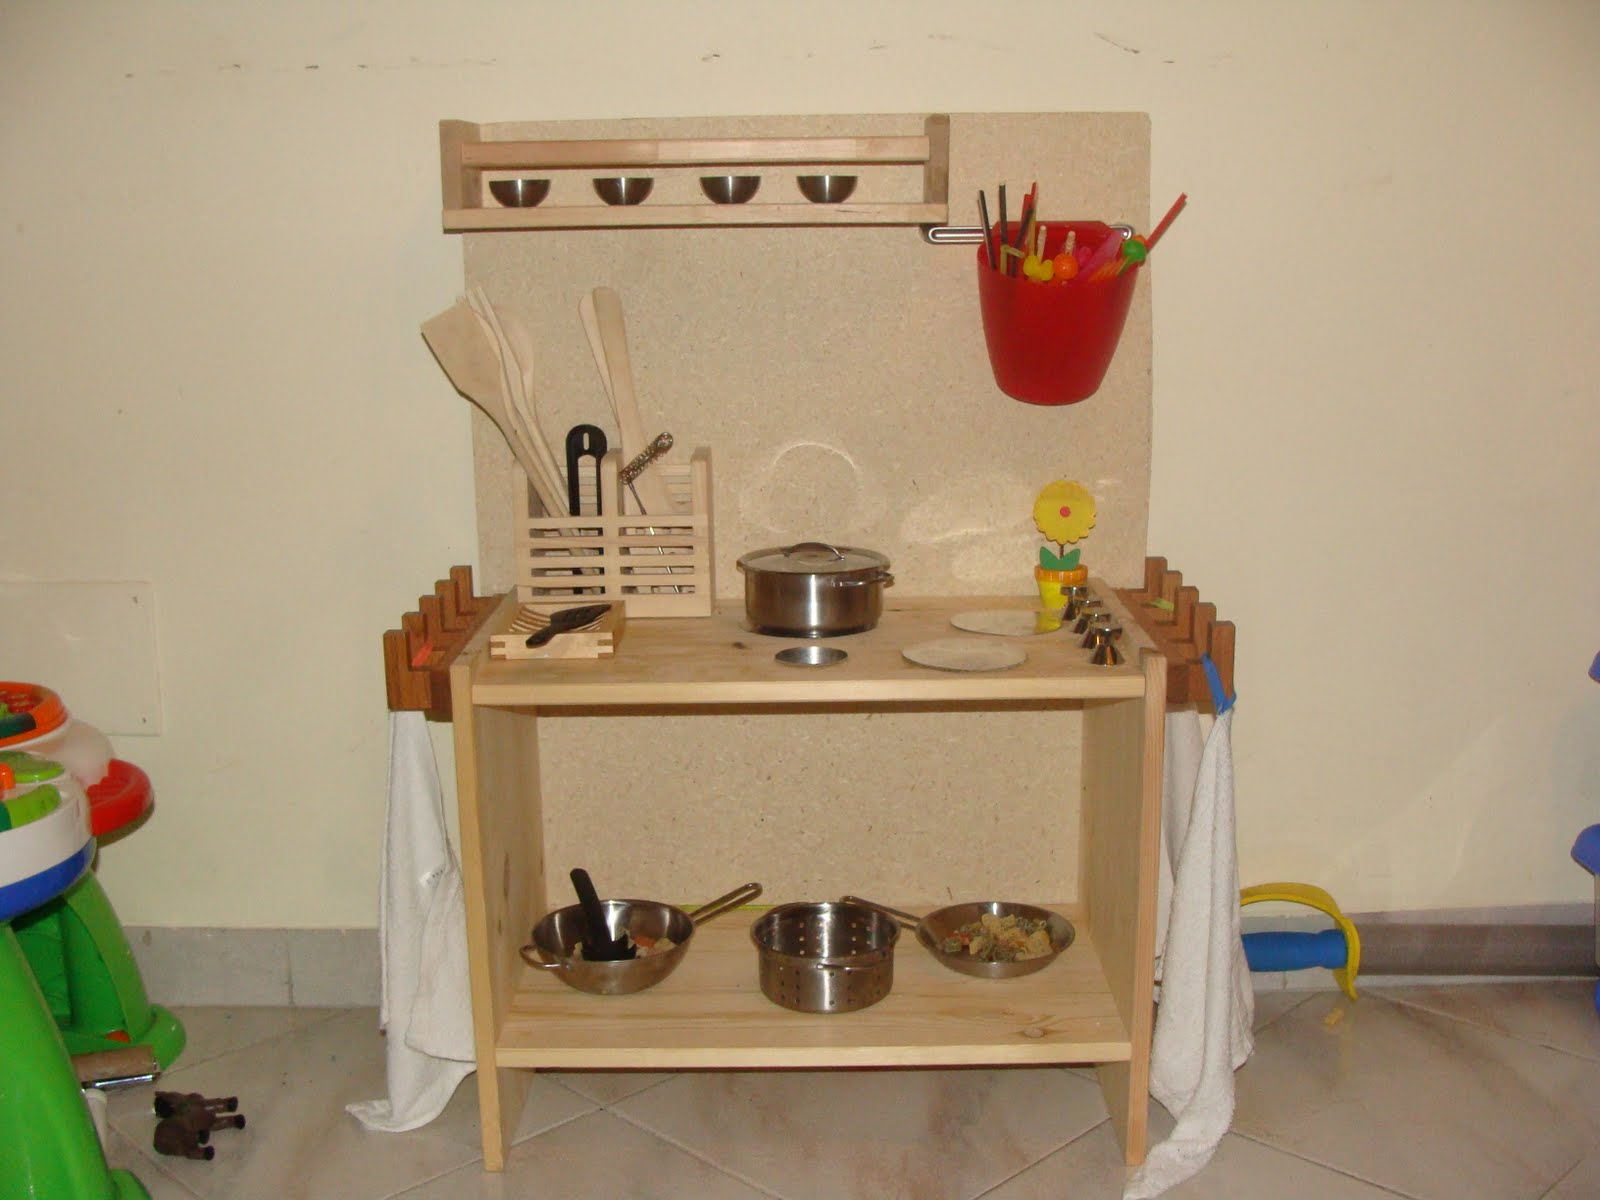 Giocattoli: la minicucina fai da te   games: mini homemade kitchen ...